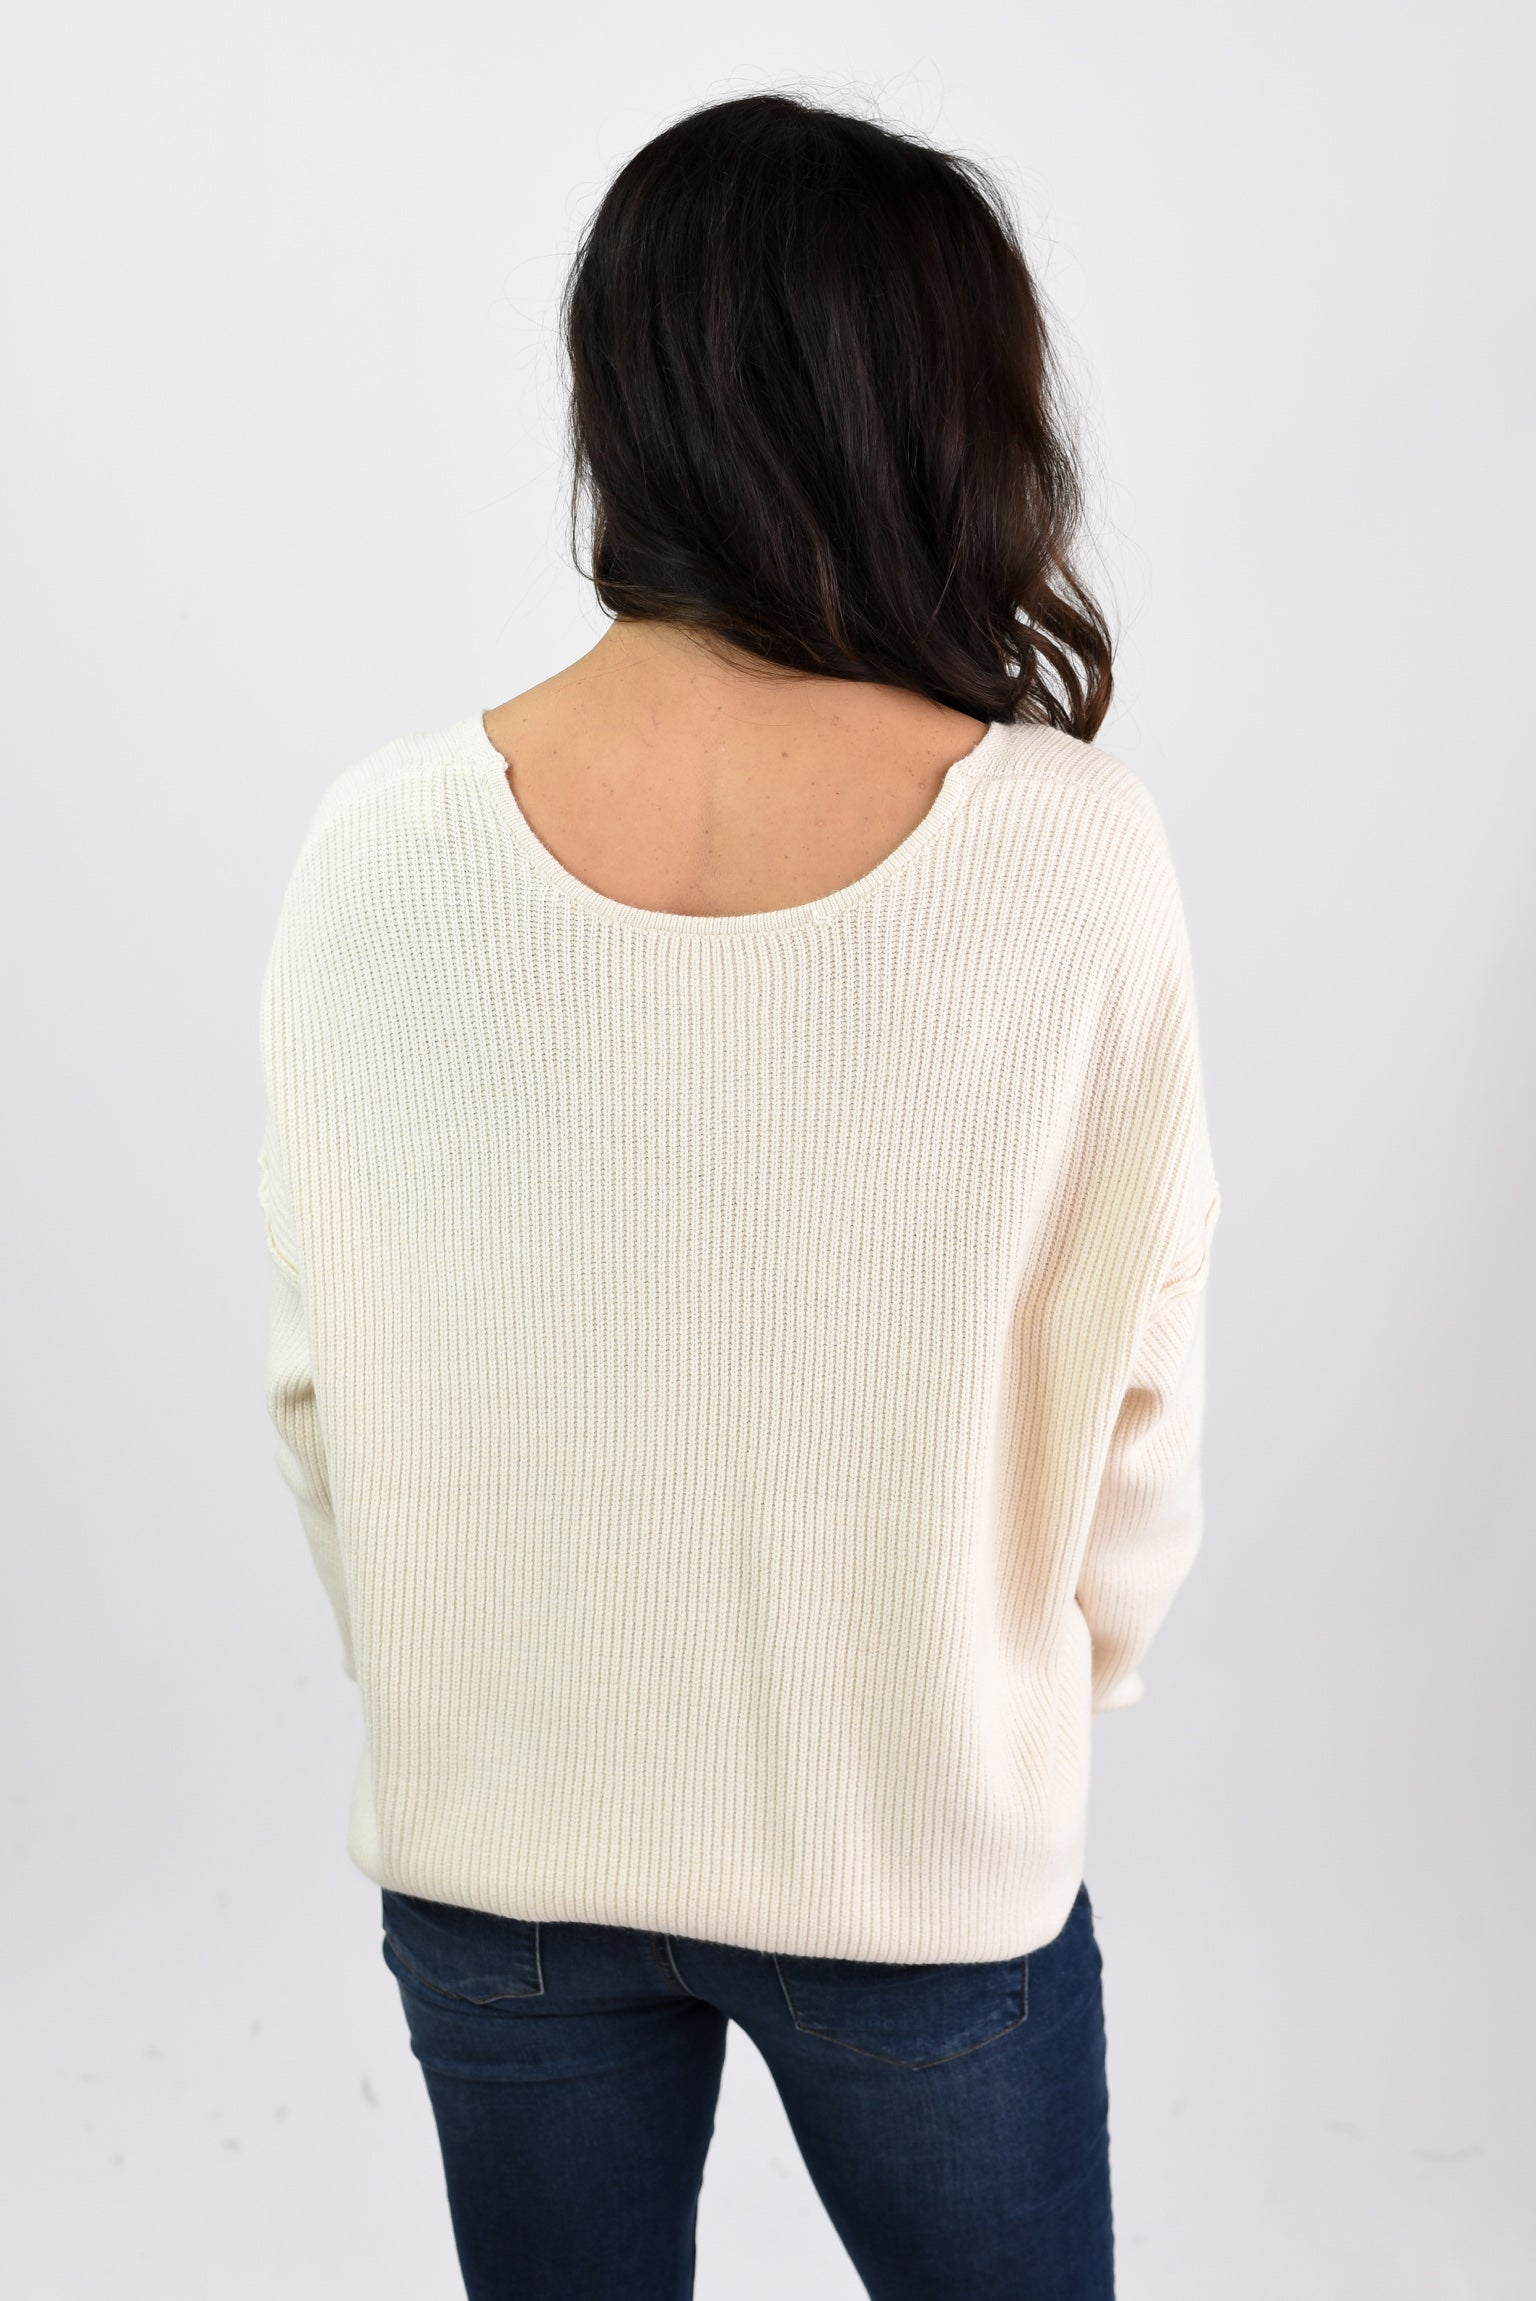 Don't Make Me Wait Ivory Button Down Sweater